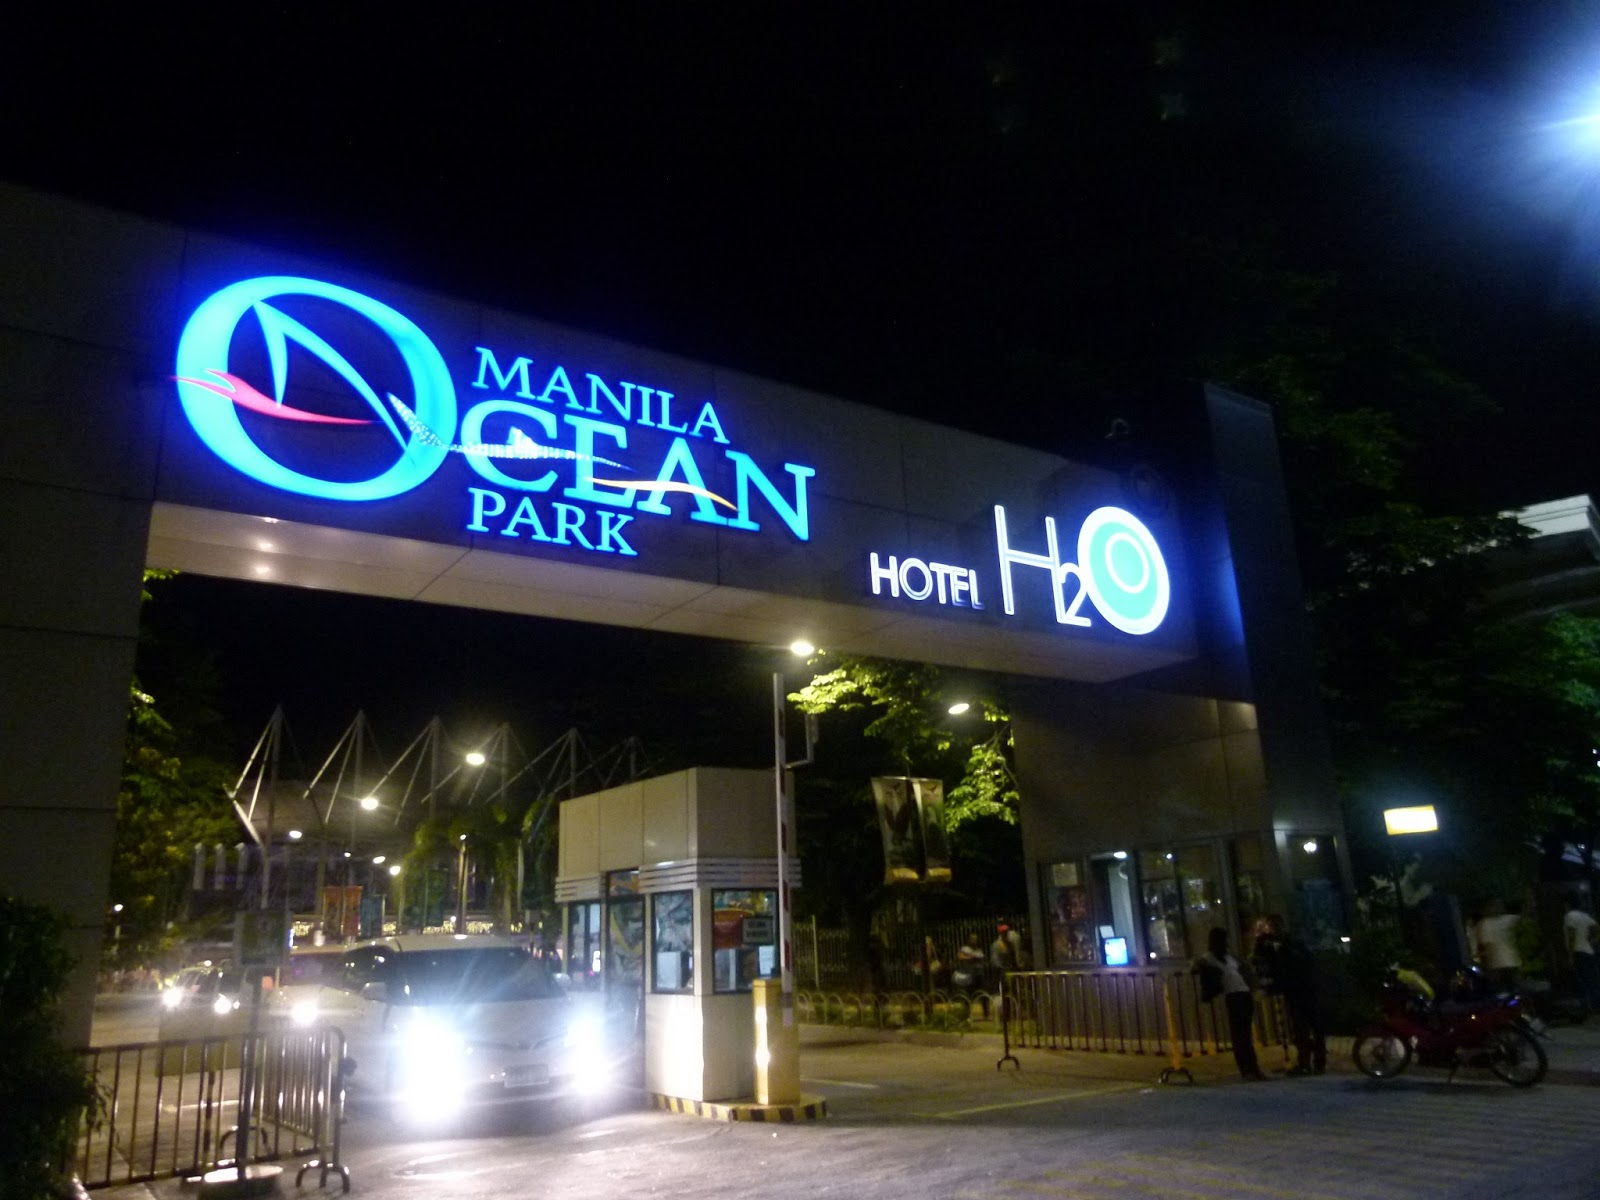 ... Manila Ocean Park is the countrys world-class marine theme park and a